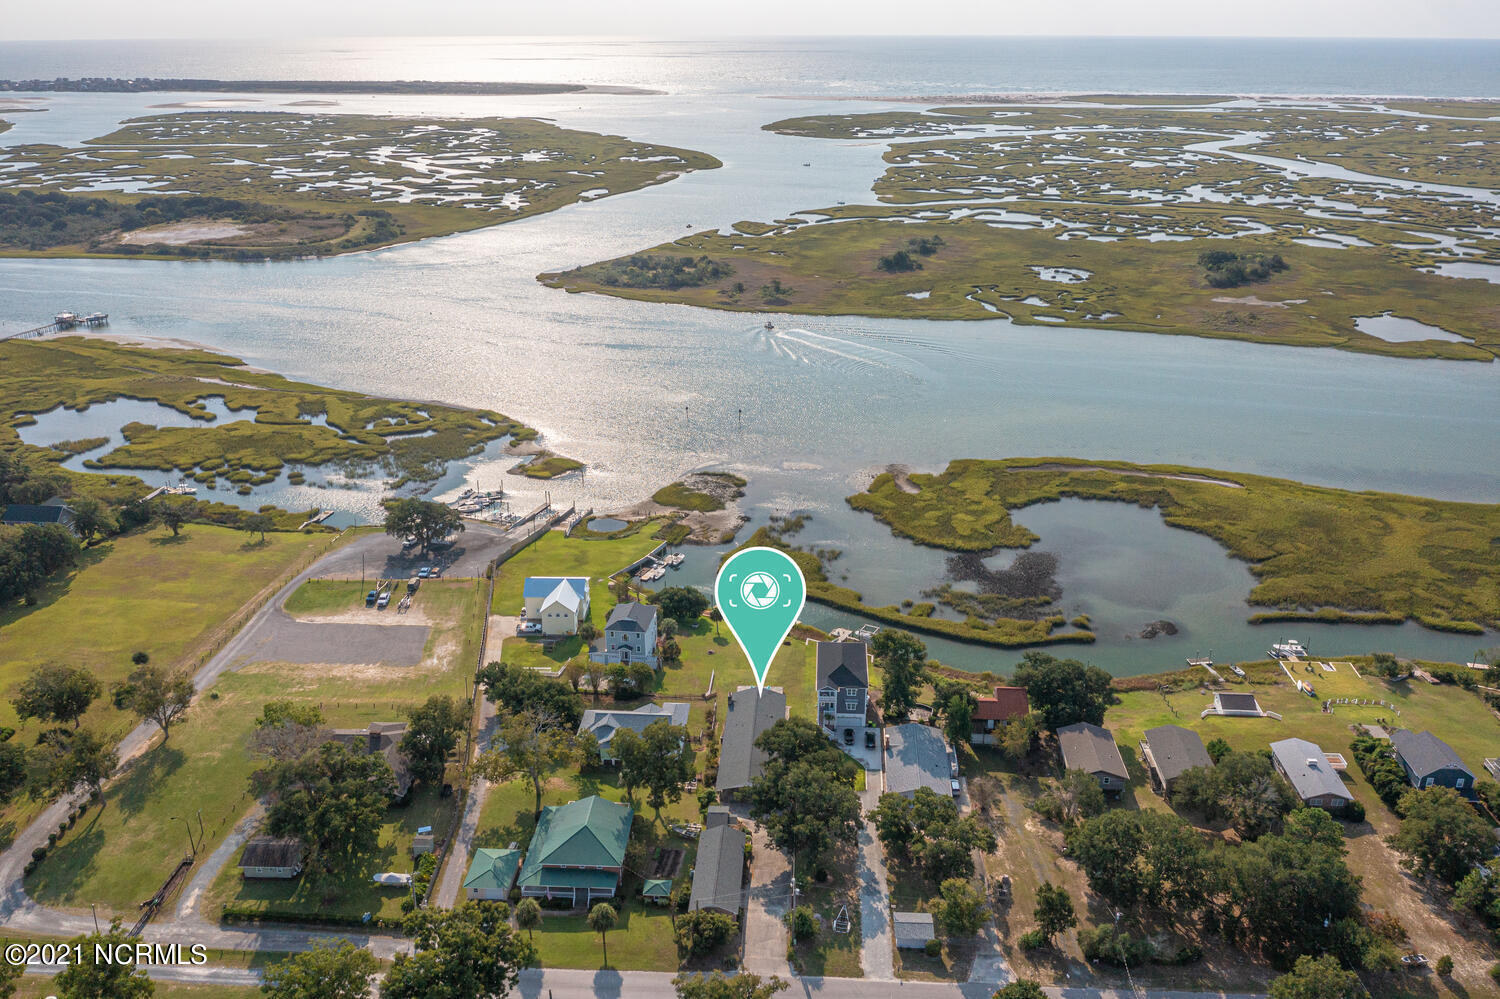 Hands Down, the best views in Hampstead, along with one of the most unique properties found in our area. This charming, waterfront, brick ranch sits upon a high bluff ''Not in a Flood Zone'', overlooking New Topsail Inlet, The Intra Coastal Waterway, Beautiful Marsh Islands, and most impressively The Atlantic Ocean. Yet, that's just the beginning. This home has a detached, one bay garage with a large storage room, plus 670 heated sqft (2 room studio with a full bath), AND an additional 3rd dwelling with 205 heated sqft, which is the perfect Art Studio/She Shed ''plumbed for an additional full bath''. The main house has an attached 2 car garage as well as an attached 2 car carport/boat storage.. given its height. Inside the main residence, you will find hardwood floors, an open floor plan, kitchen with granite countertops, a large granite bar, gas range, a gas fireplace accented with white brick, and of course the proper mantel piece.  Furthermore, one of the most dazzling assets to this home, is the plethora of windows located on the back of the home, lining the main living area, and flowing natural light through the kitchen. Each window boasts breathtaking views of the Sound, ICW, Inlet, and Ocean. Each morning, it's as if Bob Ross himself, paints every window withs its own perfect sunrise over top of a serene, Natural, Coastal North Carolina Waterfront. The boat dock is tucked around a marsh island, giving it the ideal protection from the ICW waves, yet not hindering the convenience of a quick boat ride to any of the private islands across the way. Hampstead Marina/Boat Ramp is only a block away. This is truly a one-of-a-kind property, and in my opinion UNBEATABLE VIEWS.